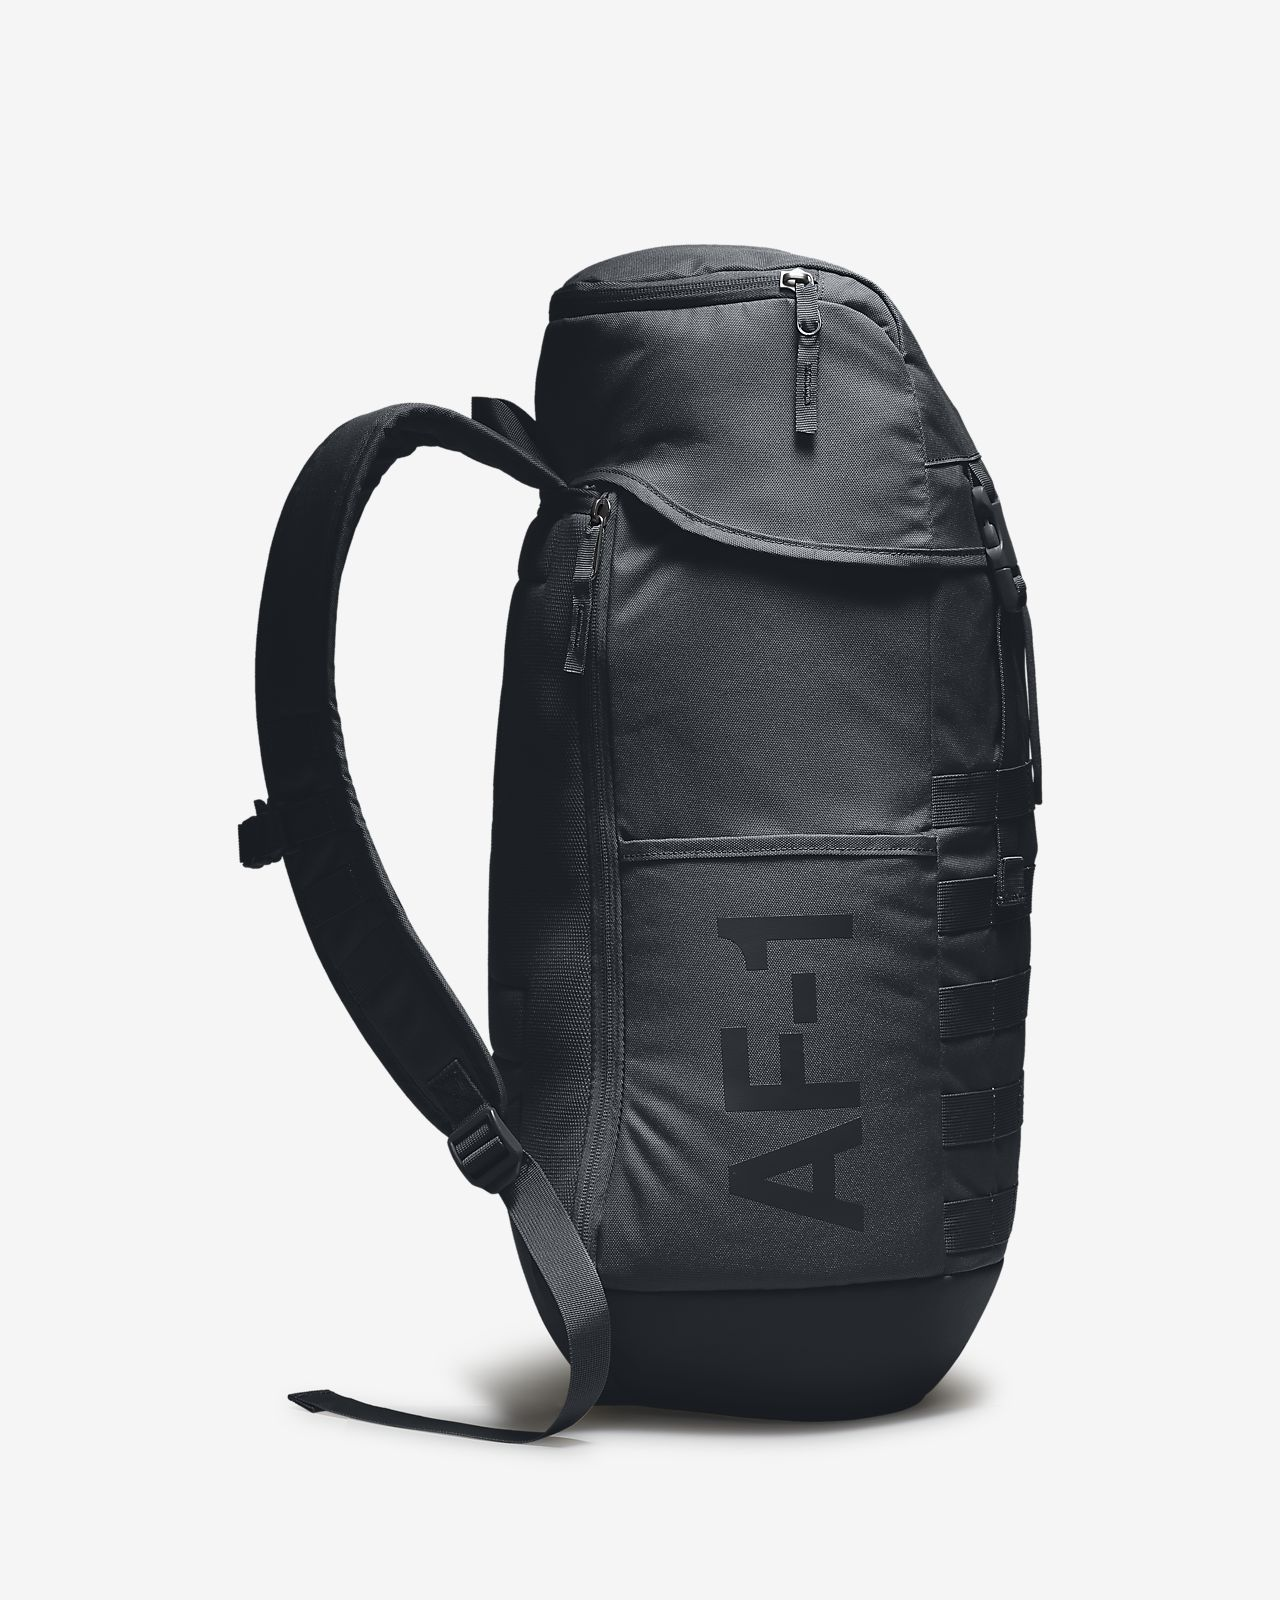 d7a86c5d2b2c Low Resolution Nike Sportswear AF1 Backpack Nike Sportswear AF1 Backpack